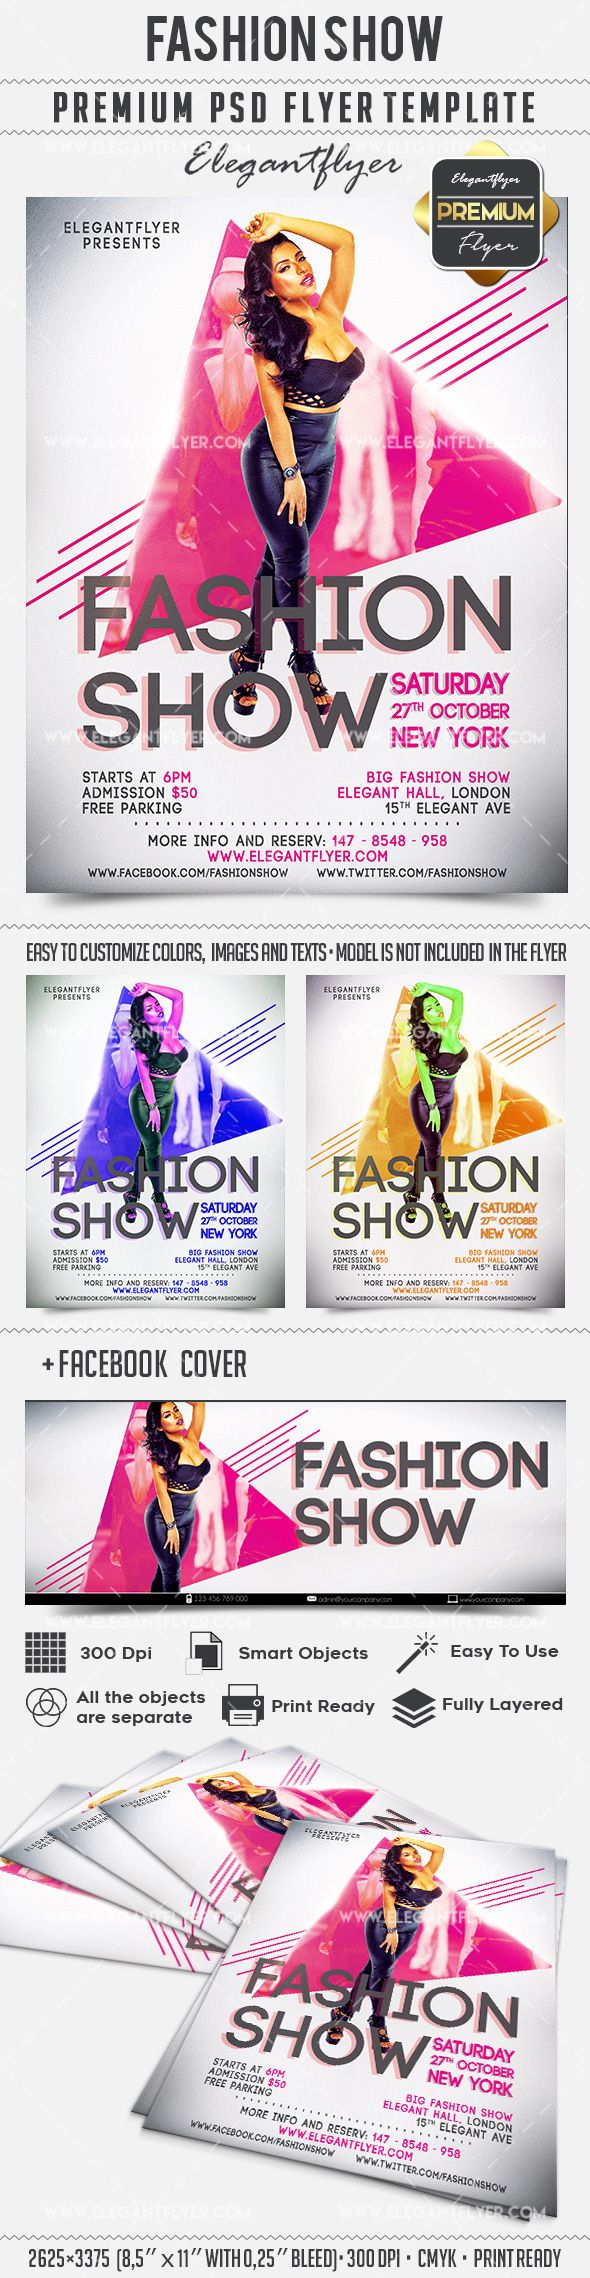 Fashion Show Invitation Flyer Template